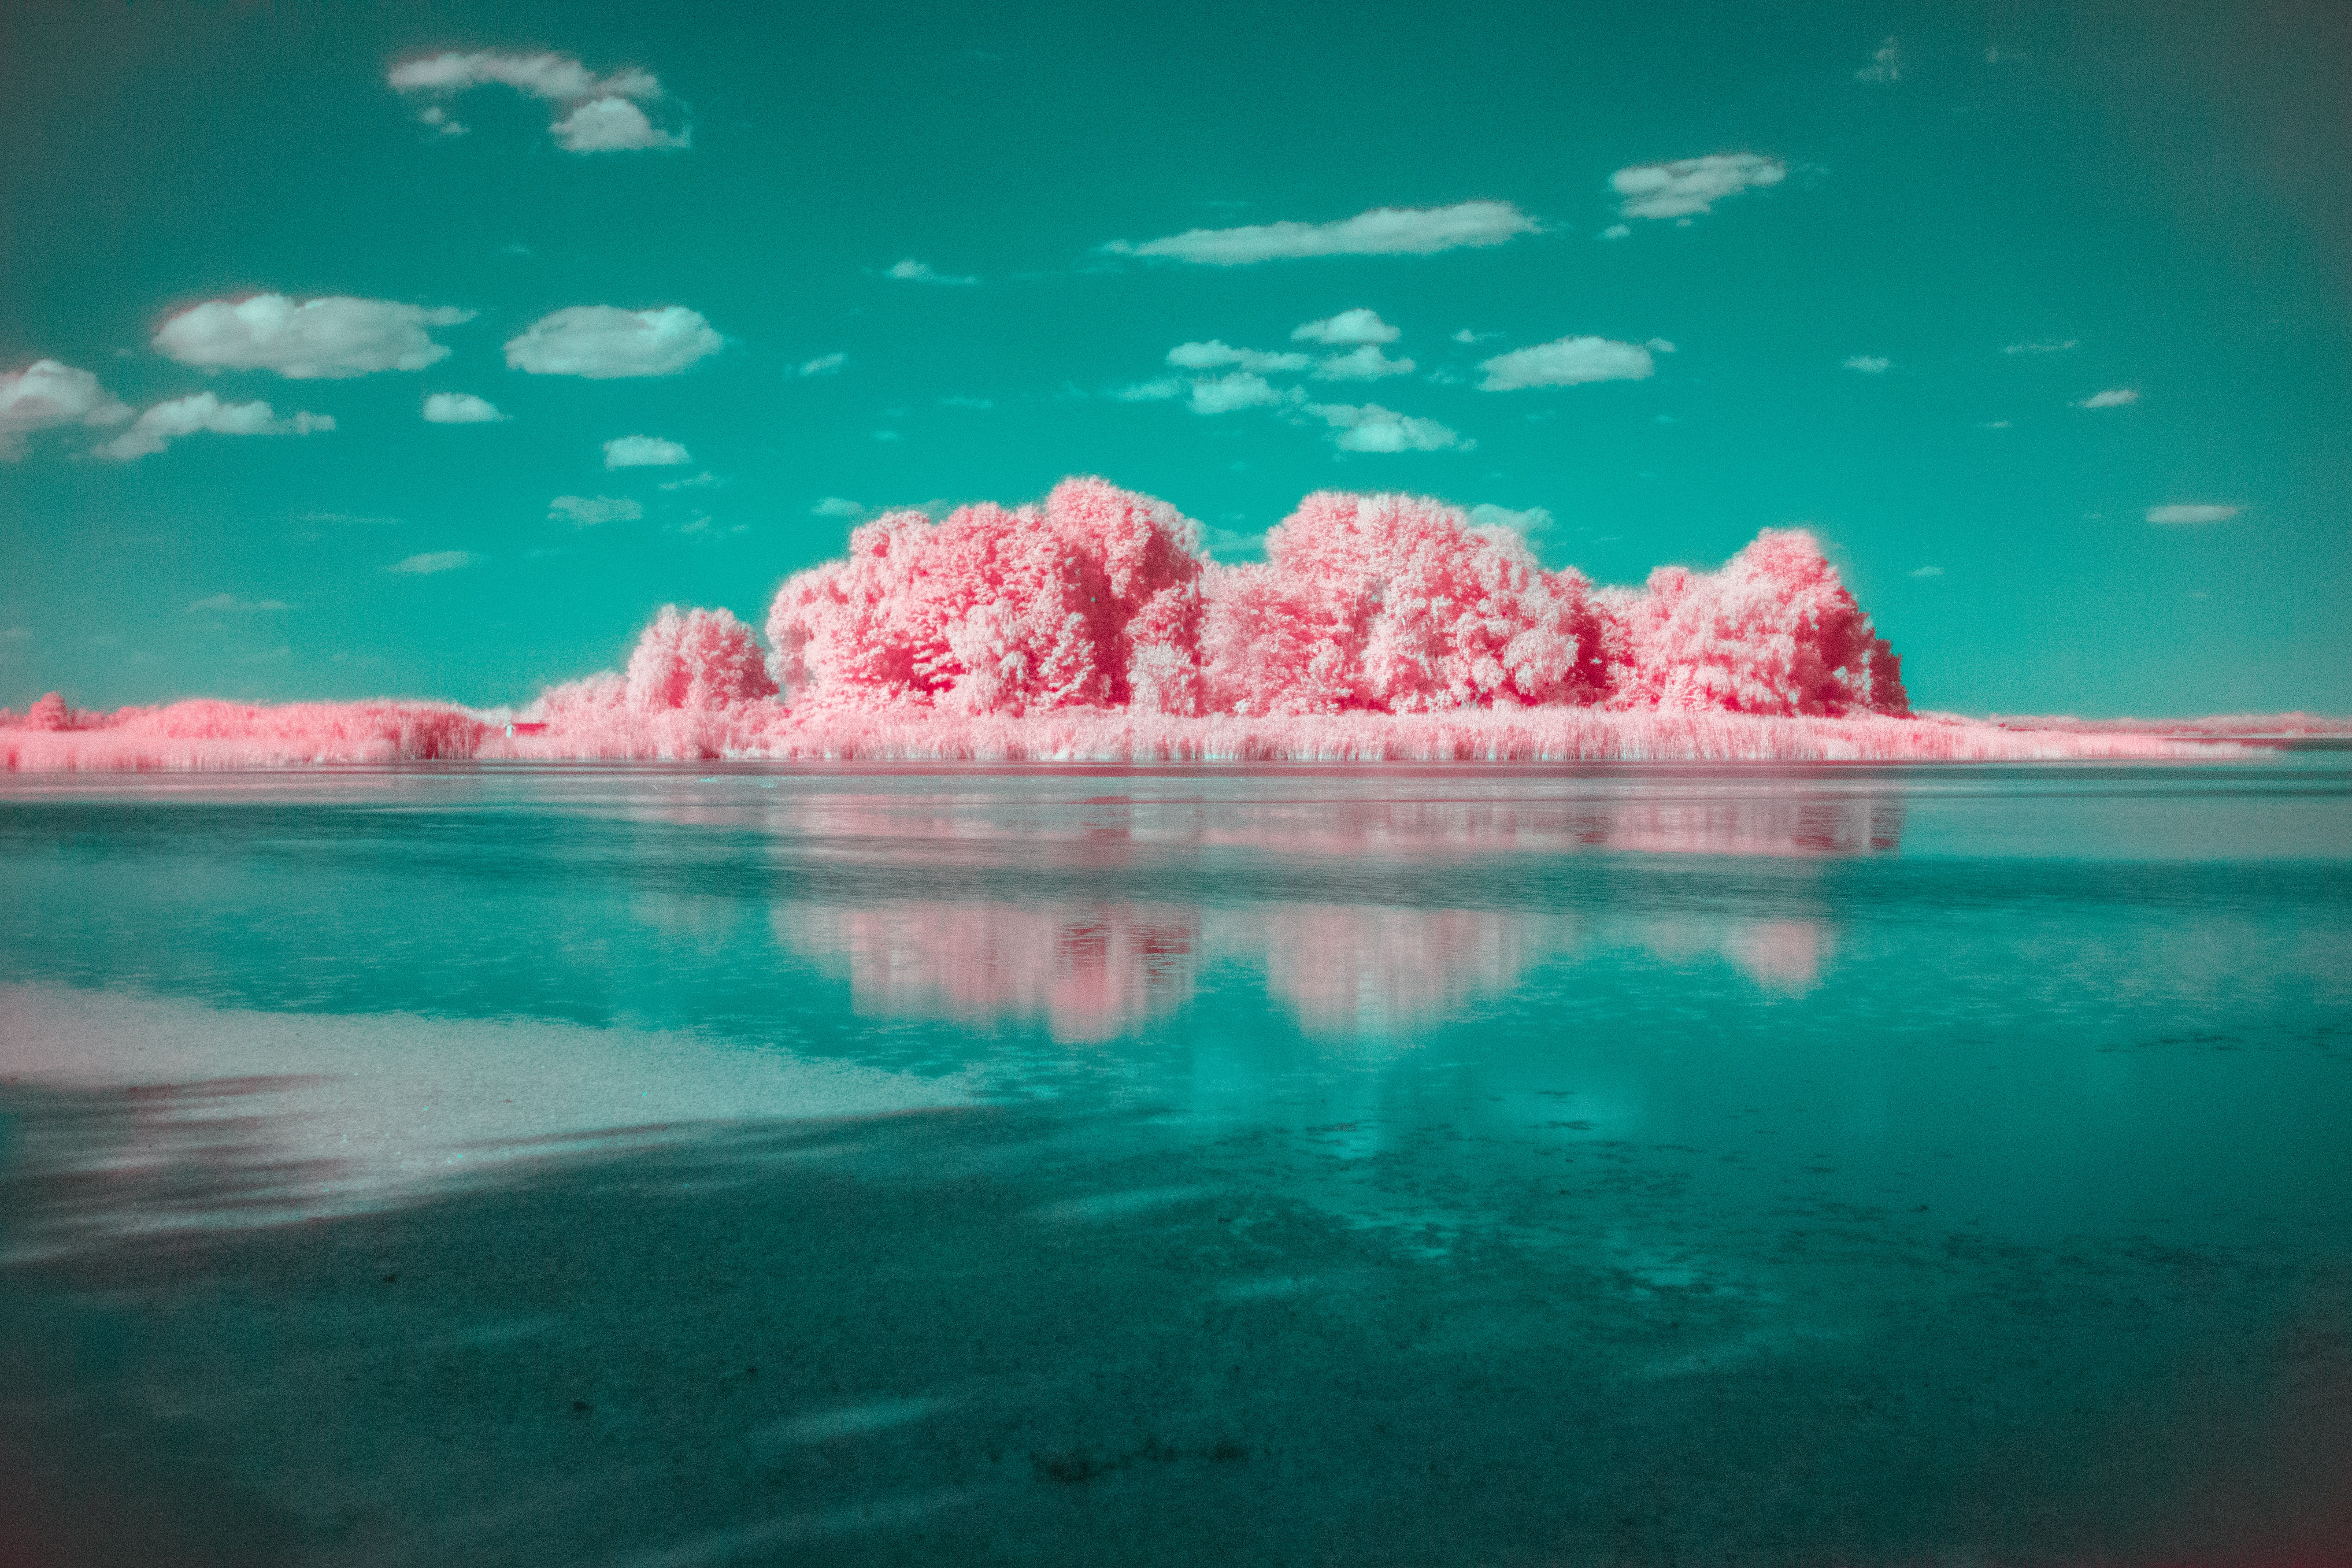 pink cloud formation above calm body of water